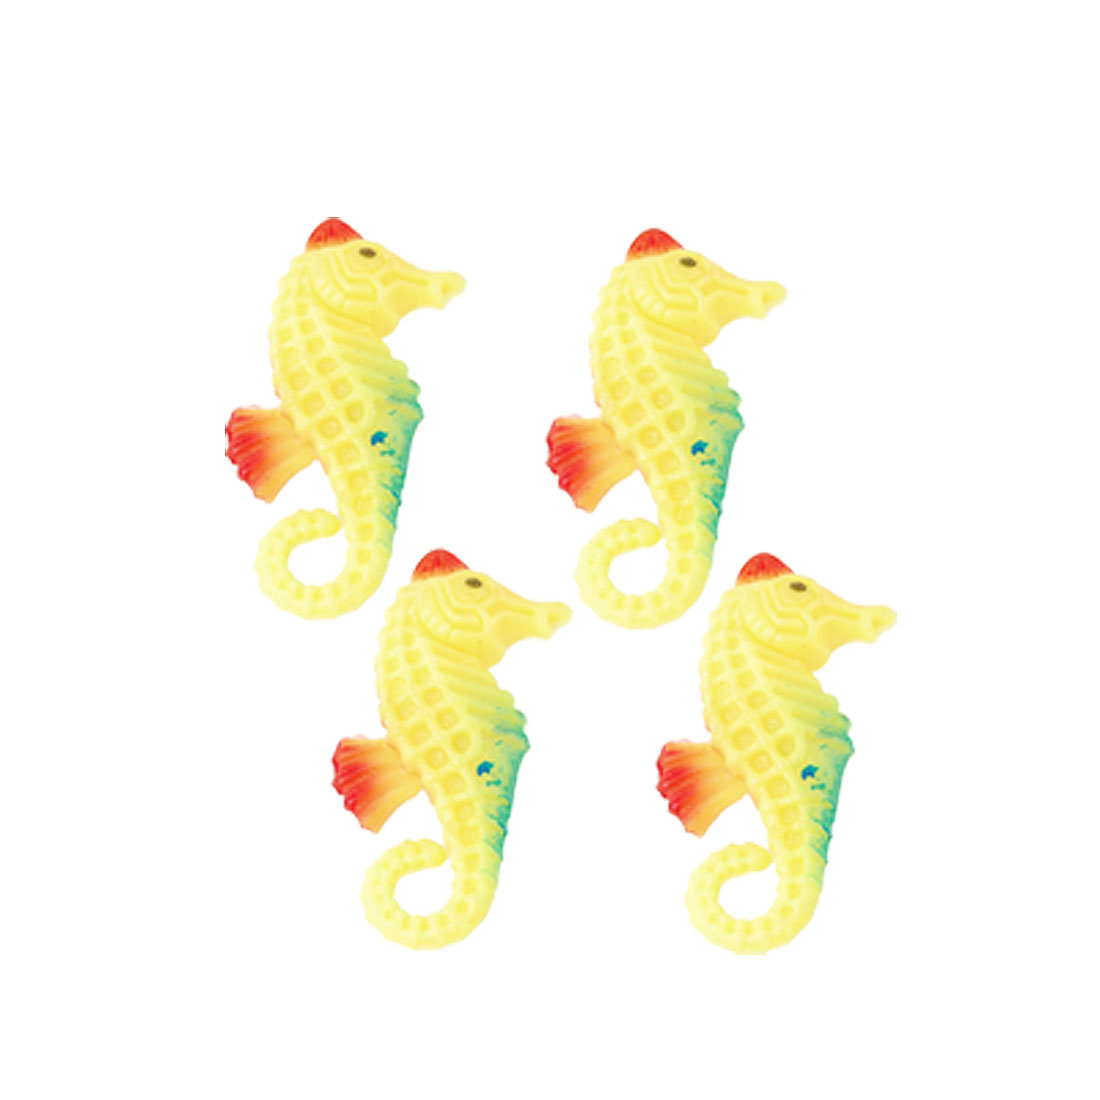 4 Pcs Plastic Fake Hippocampi Ornament Yellow for Aquarium Fish Tank